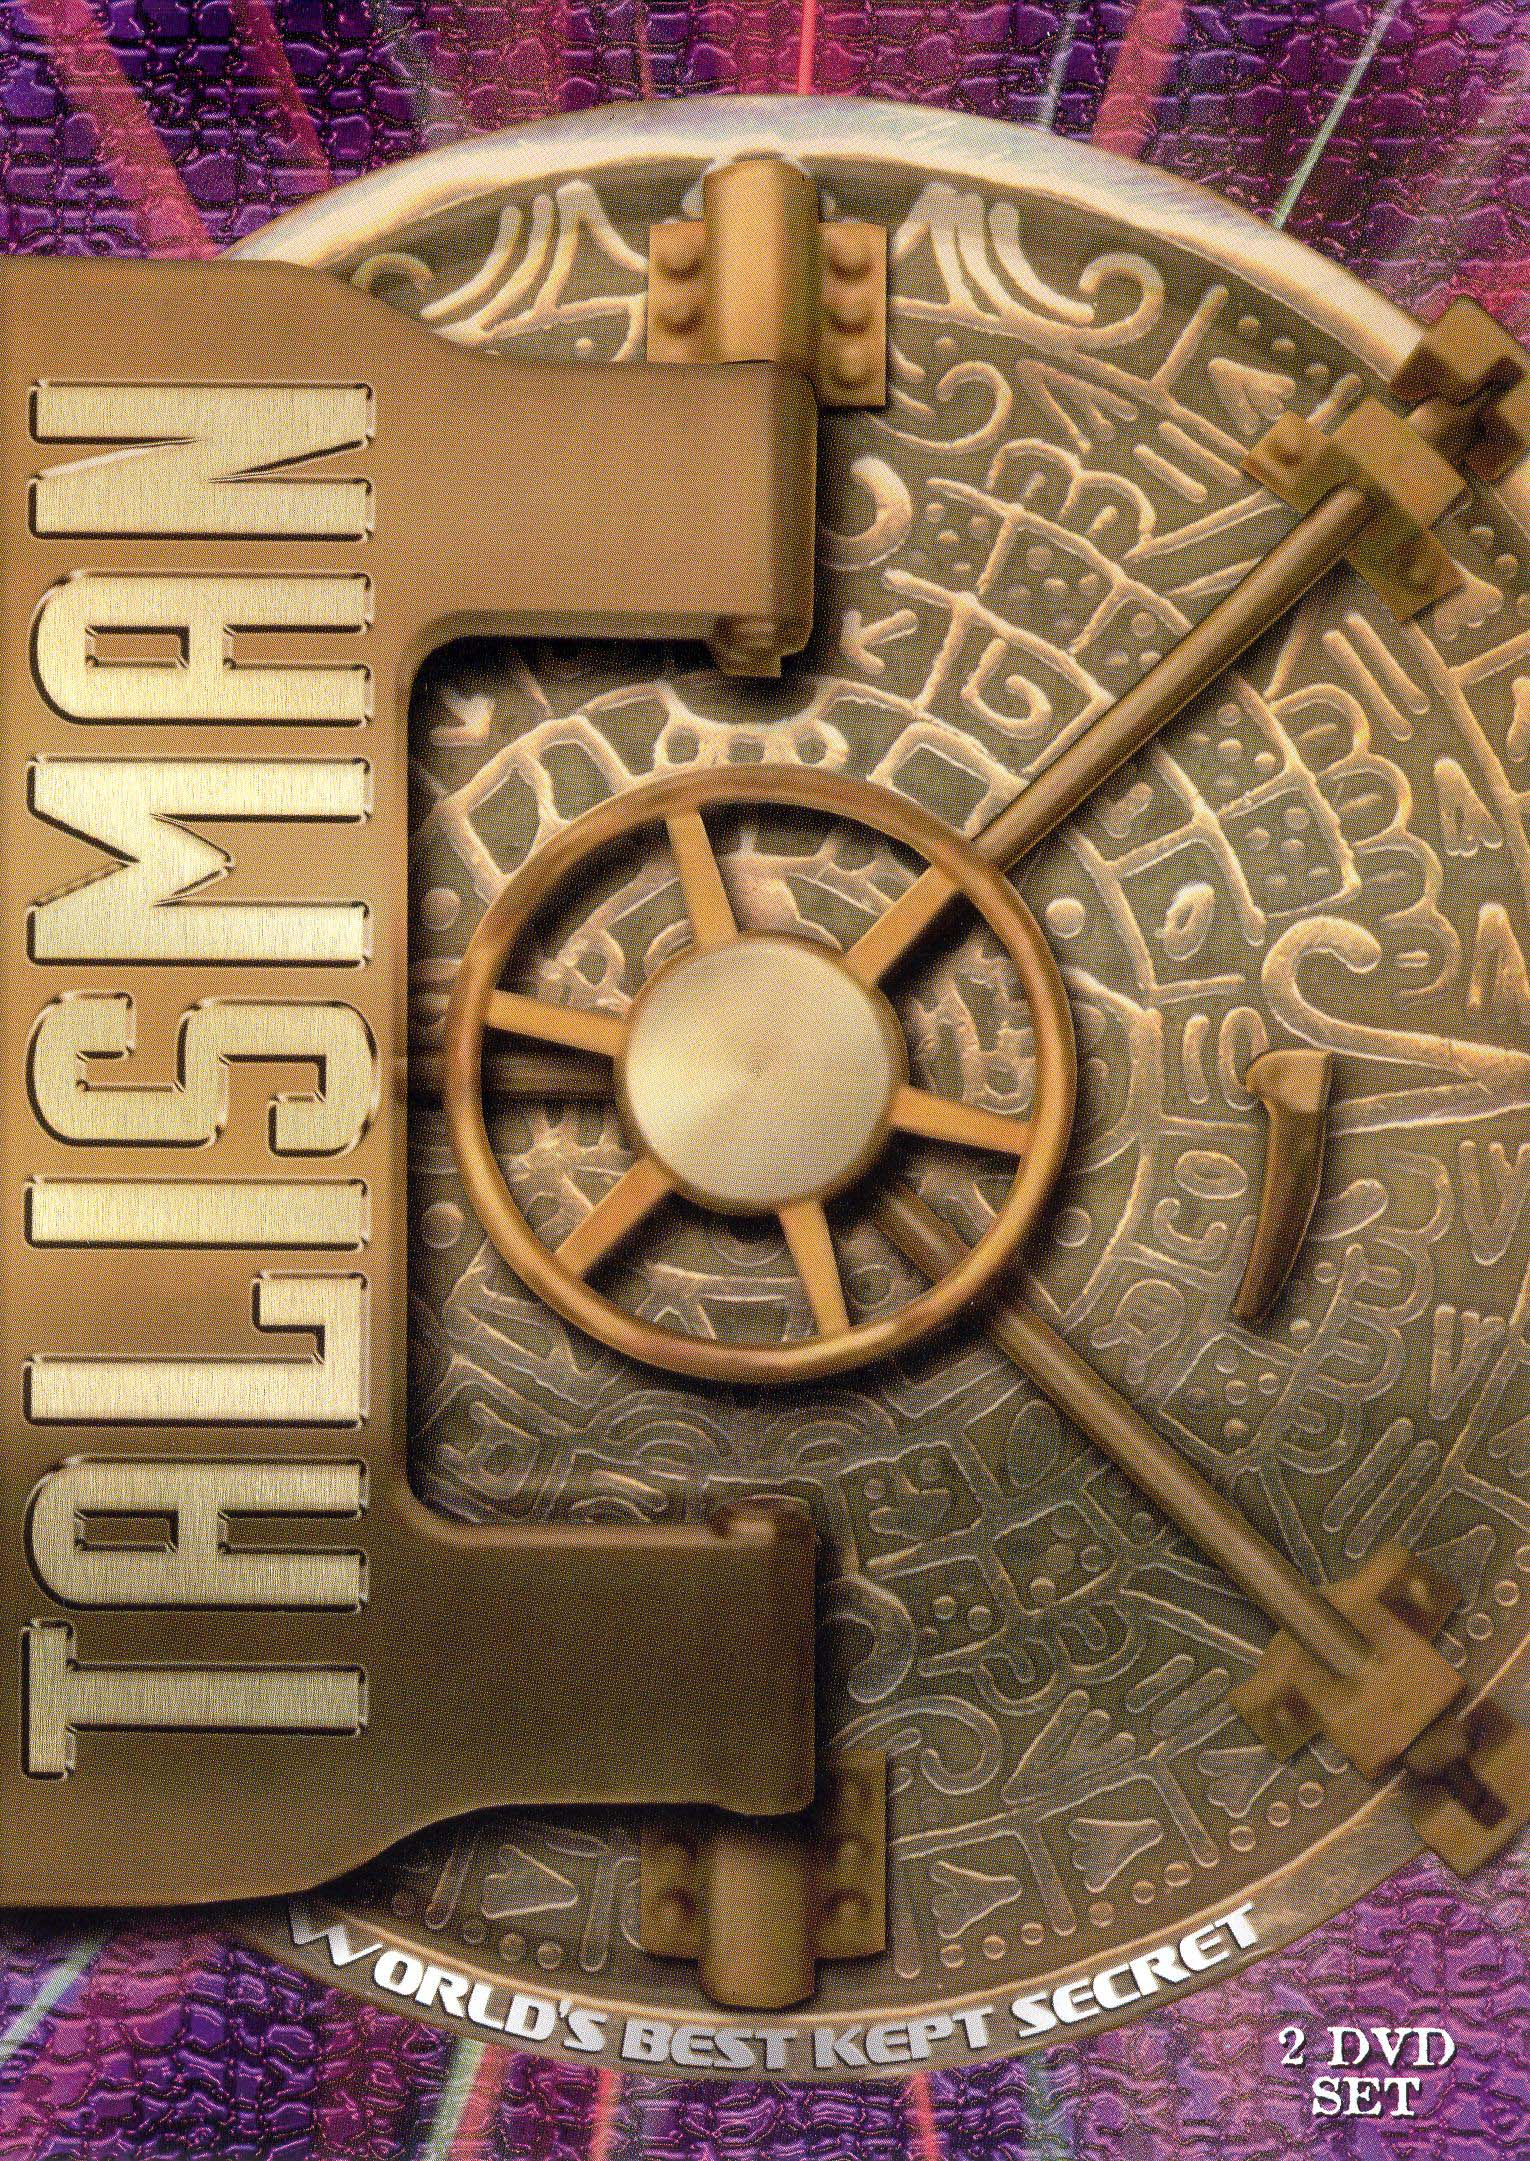 Talisman: The World's Best Kept Secret